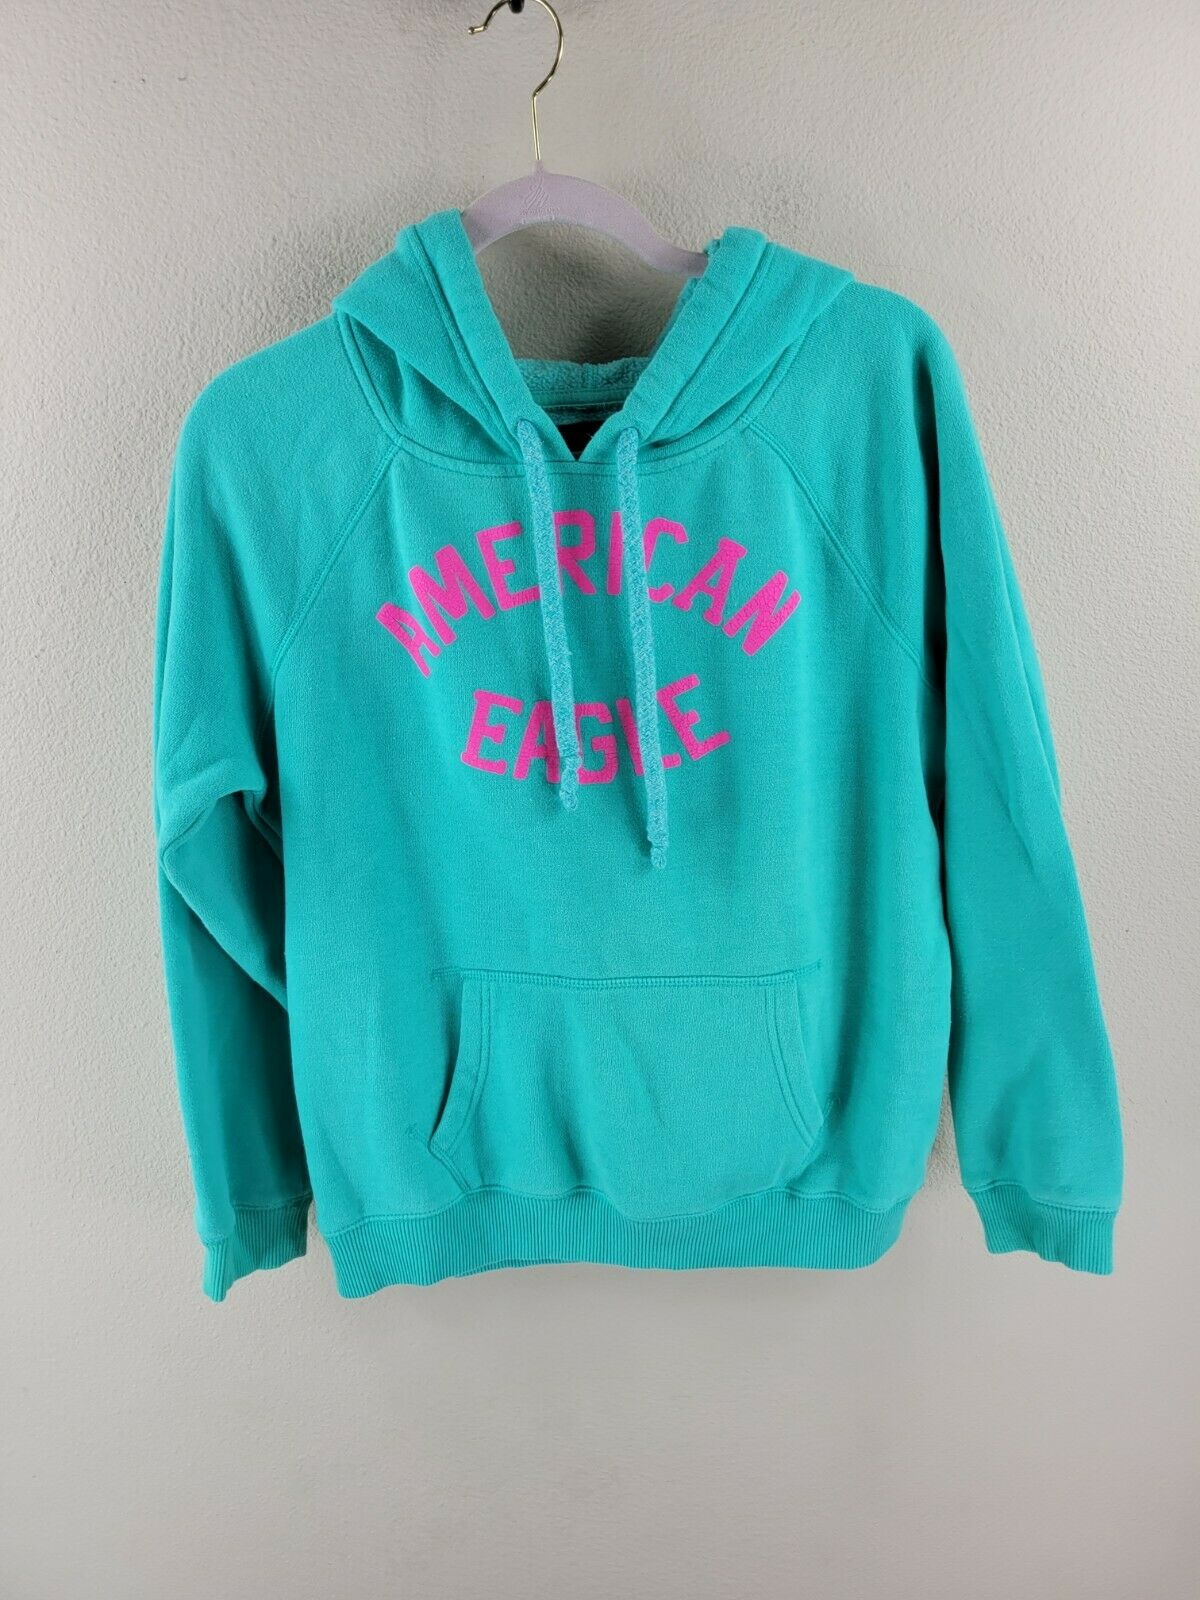 Women's Green American Eagle Cotton Blend Pullover Hoodie Sweater Size Large